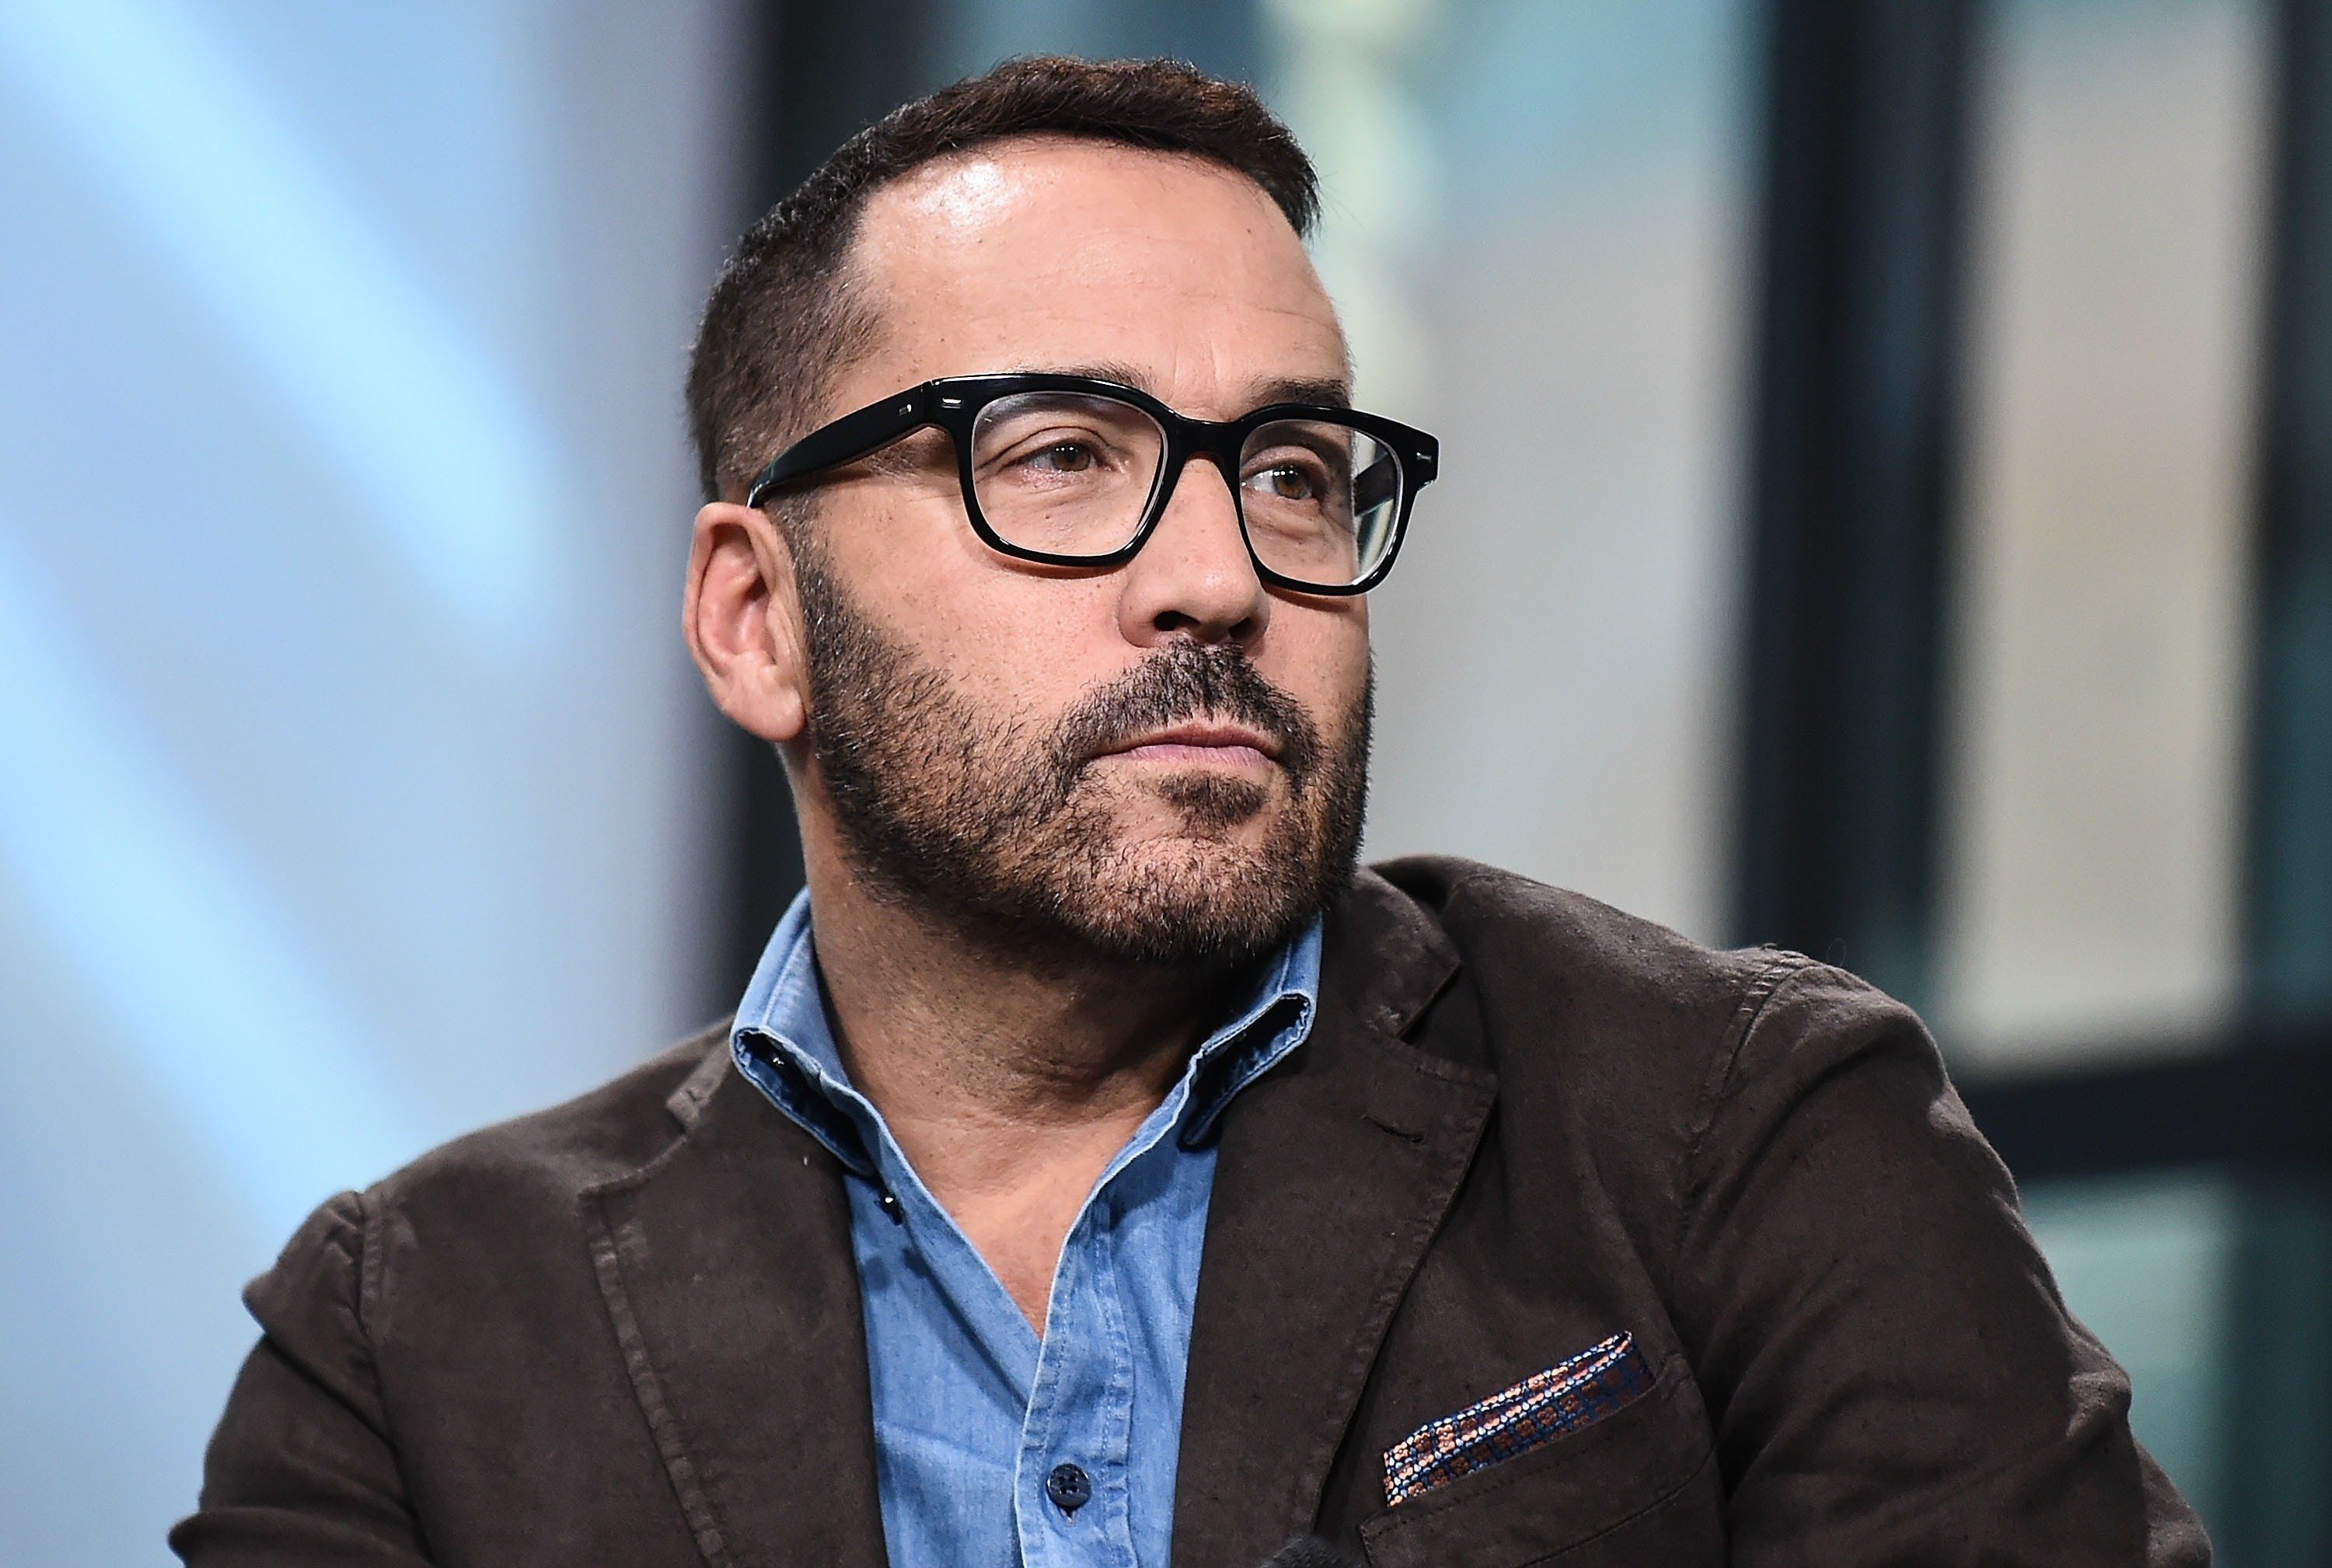 Jeremy Piven Accused Of Sexually Assaulting Actress On 'Entourage' Set